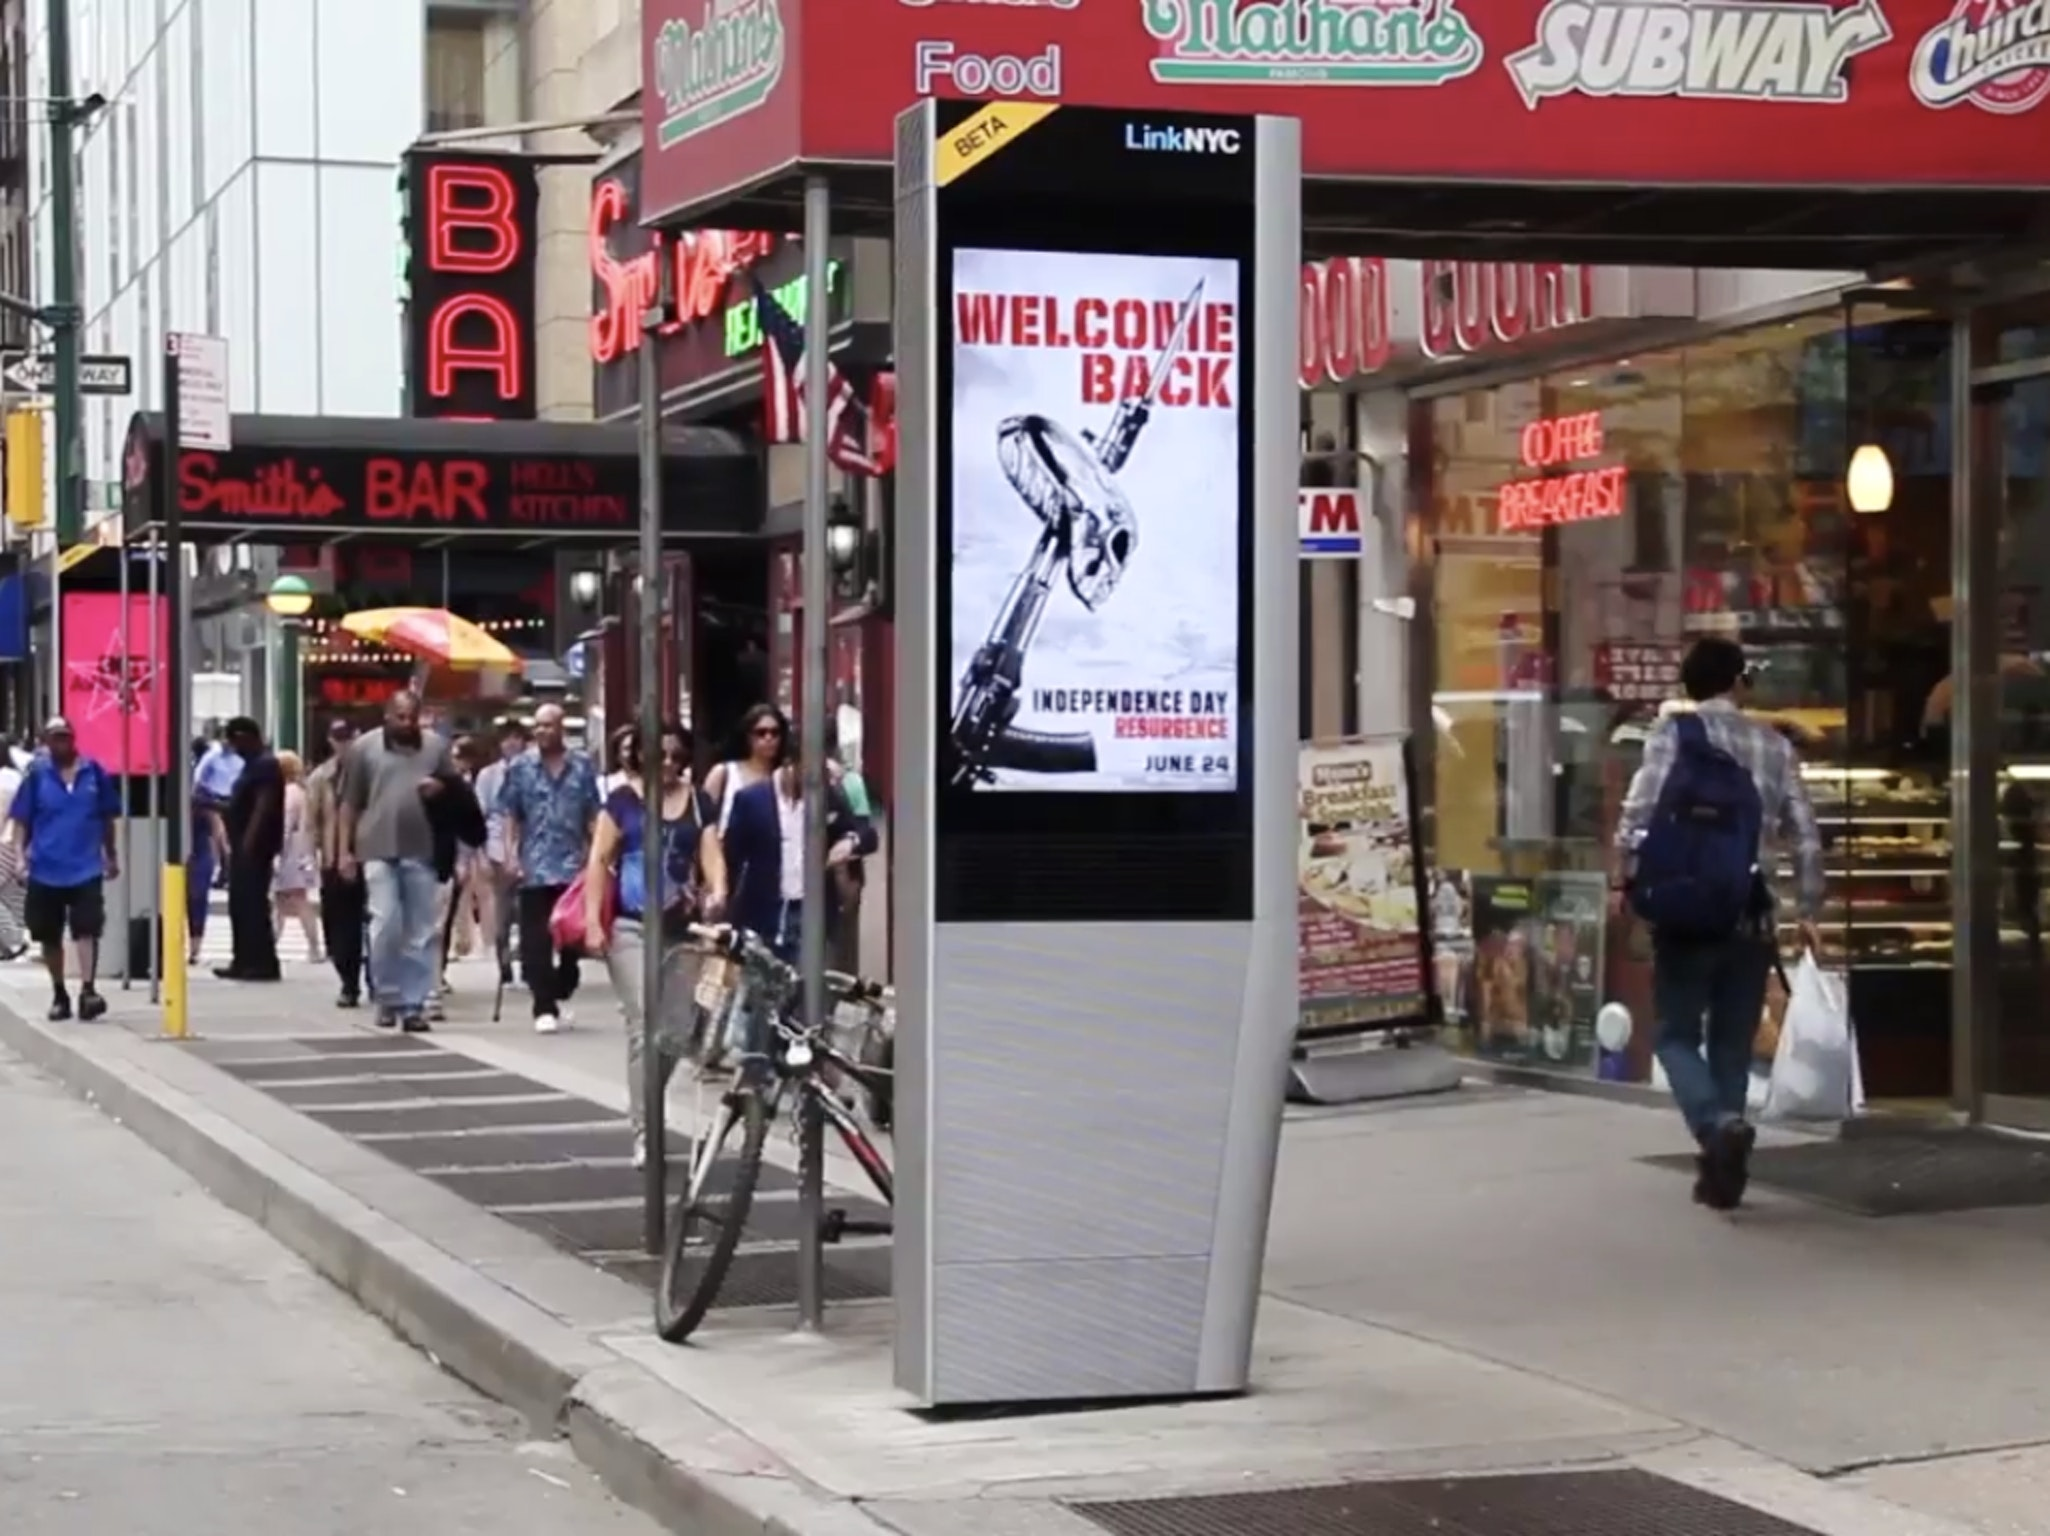 Could Public Wifi Like LinkNYC Replace Your Data Plan?